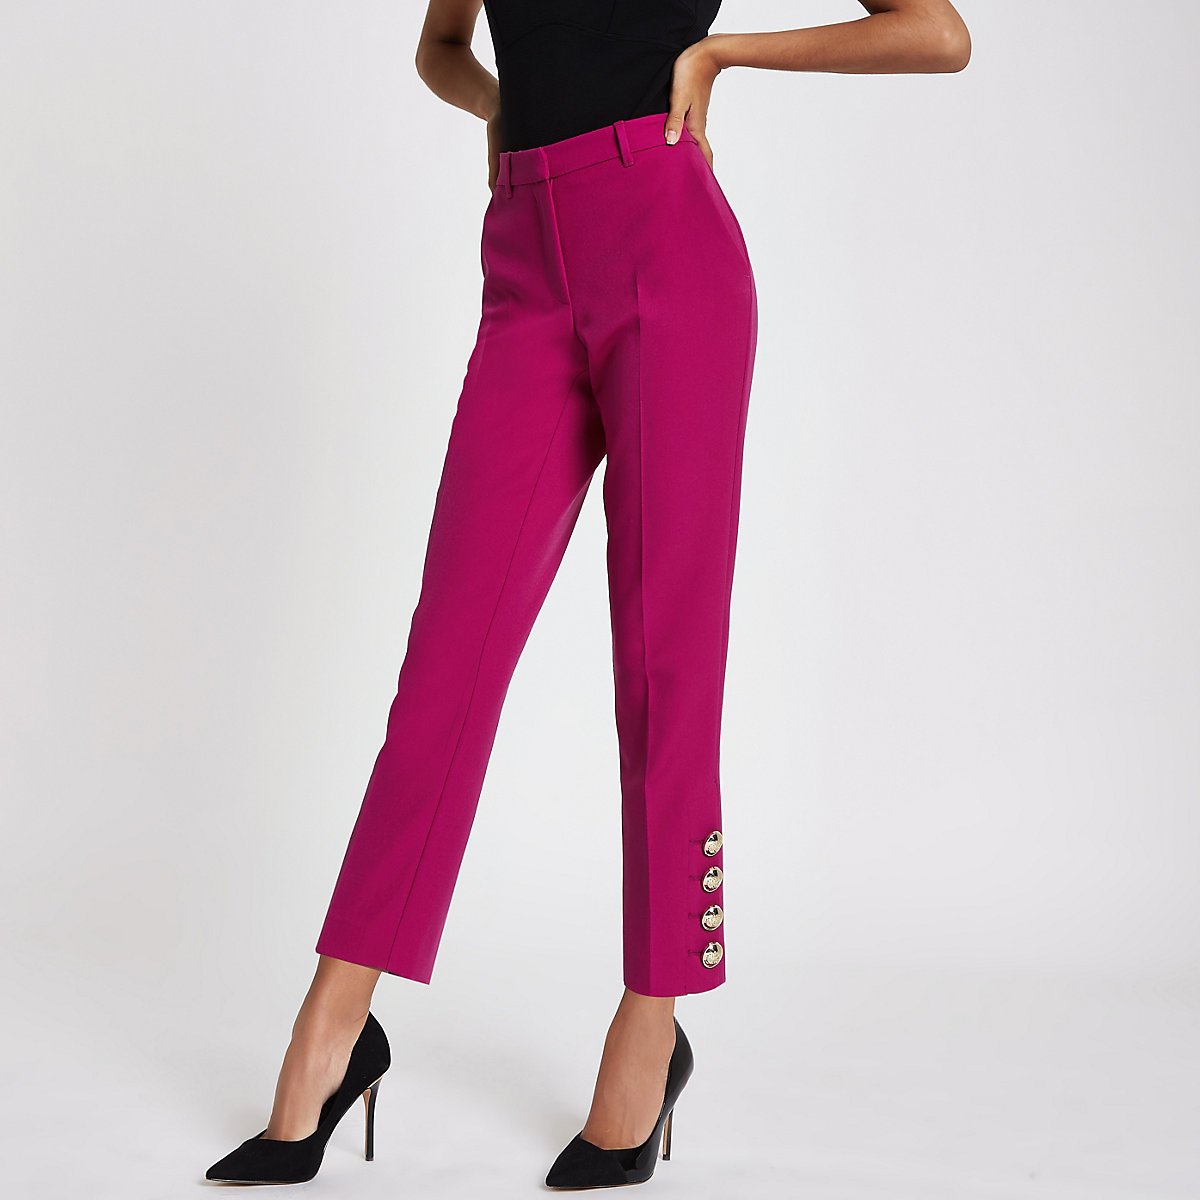 Pink gold tone button cigarette trousers